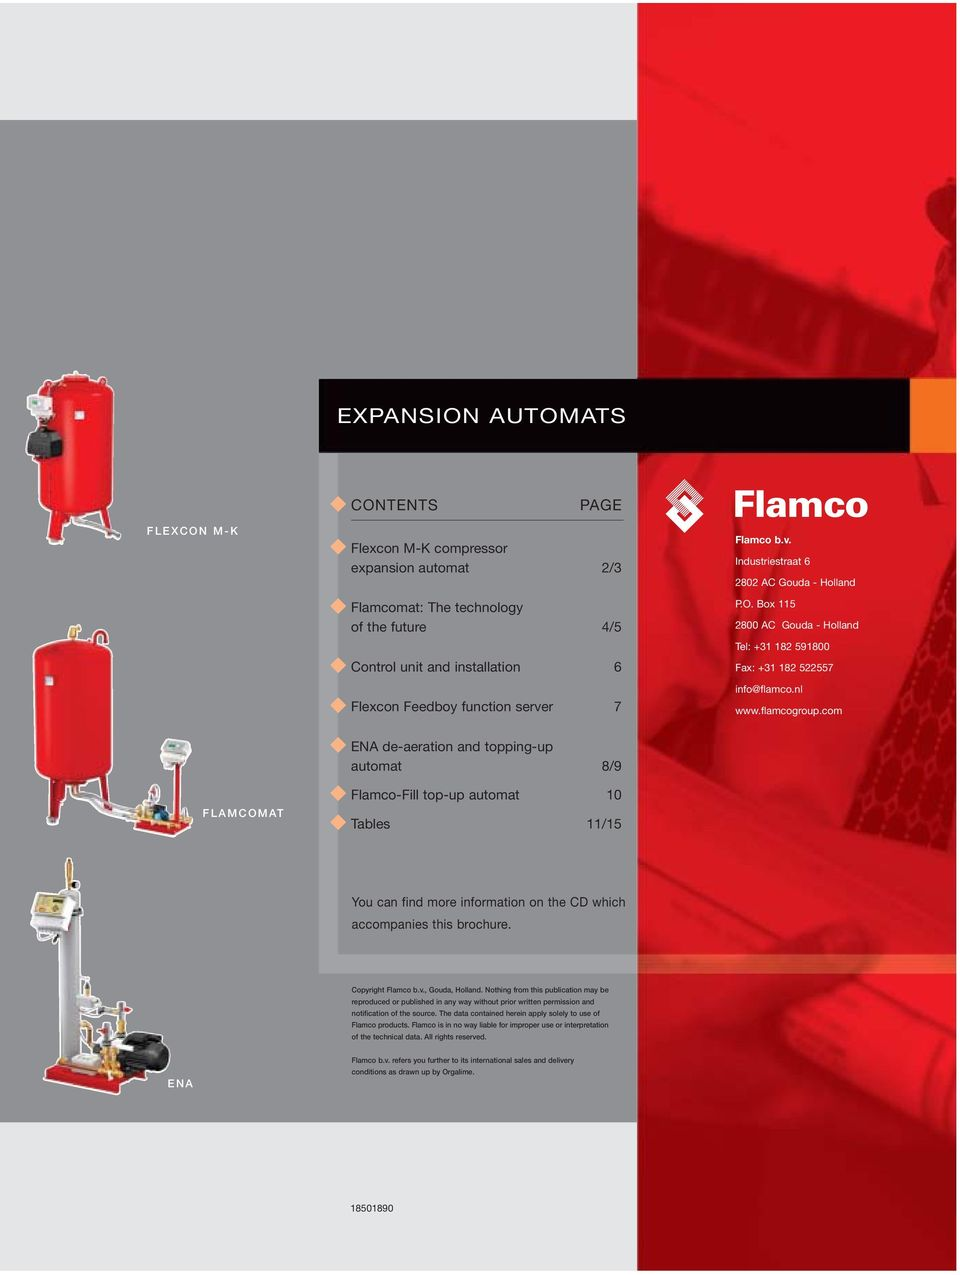 com FLAMCOMAT ENA de-aeration and topping-up automat 8/9 Flamco-Fill top-up automat 10 Tables 11/15 You can find more information on the CD which accompanies this brochure. Copyright Flamco b.v.